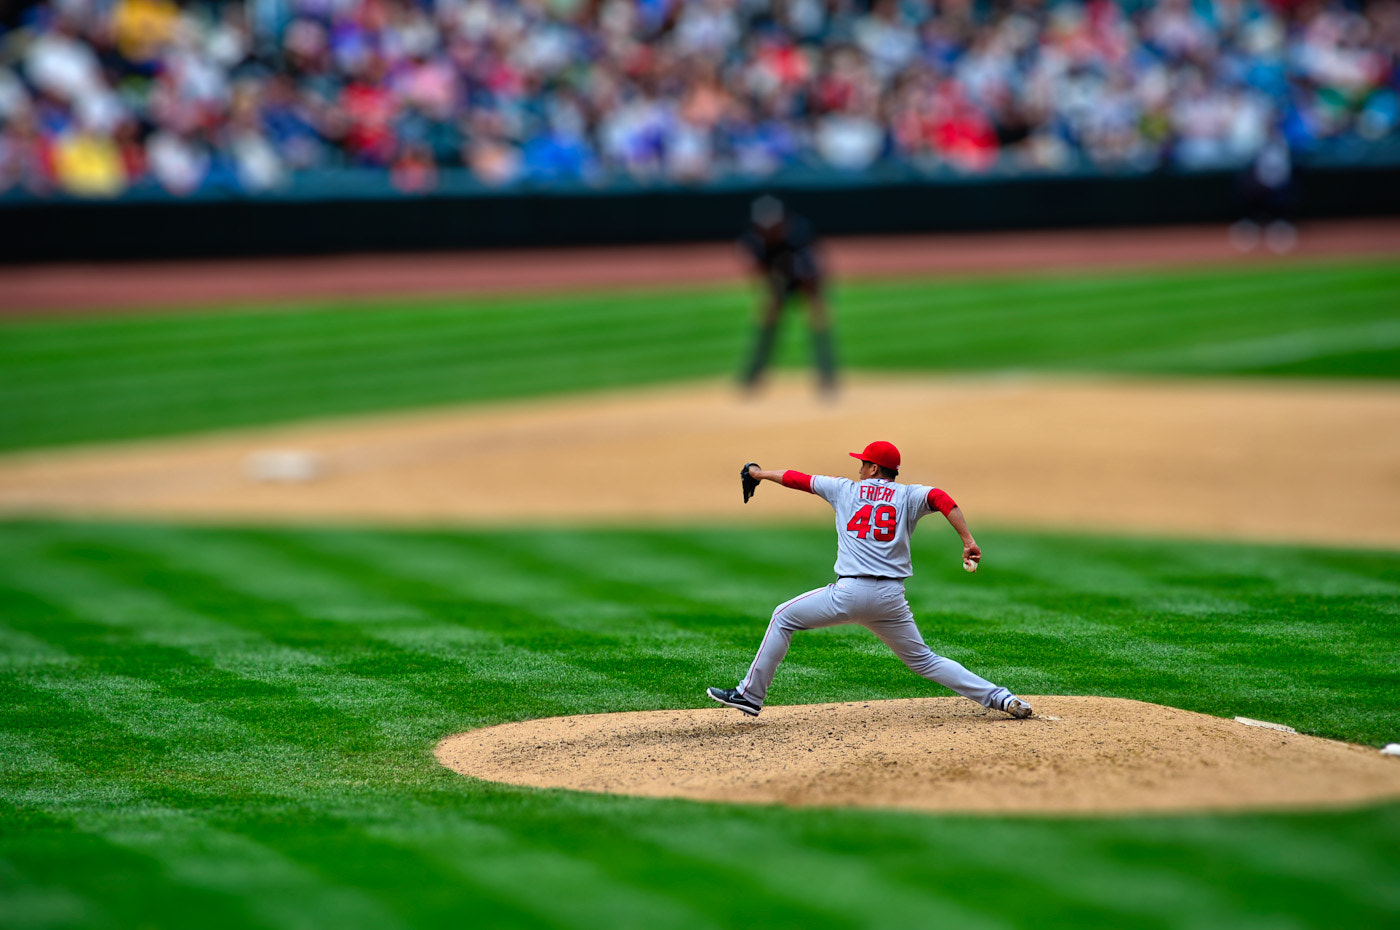 Photograph The Pitch by Brian Bonham on 500px